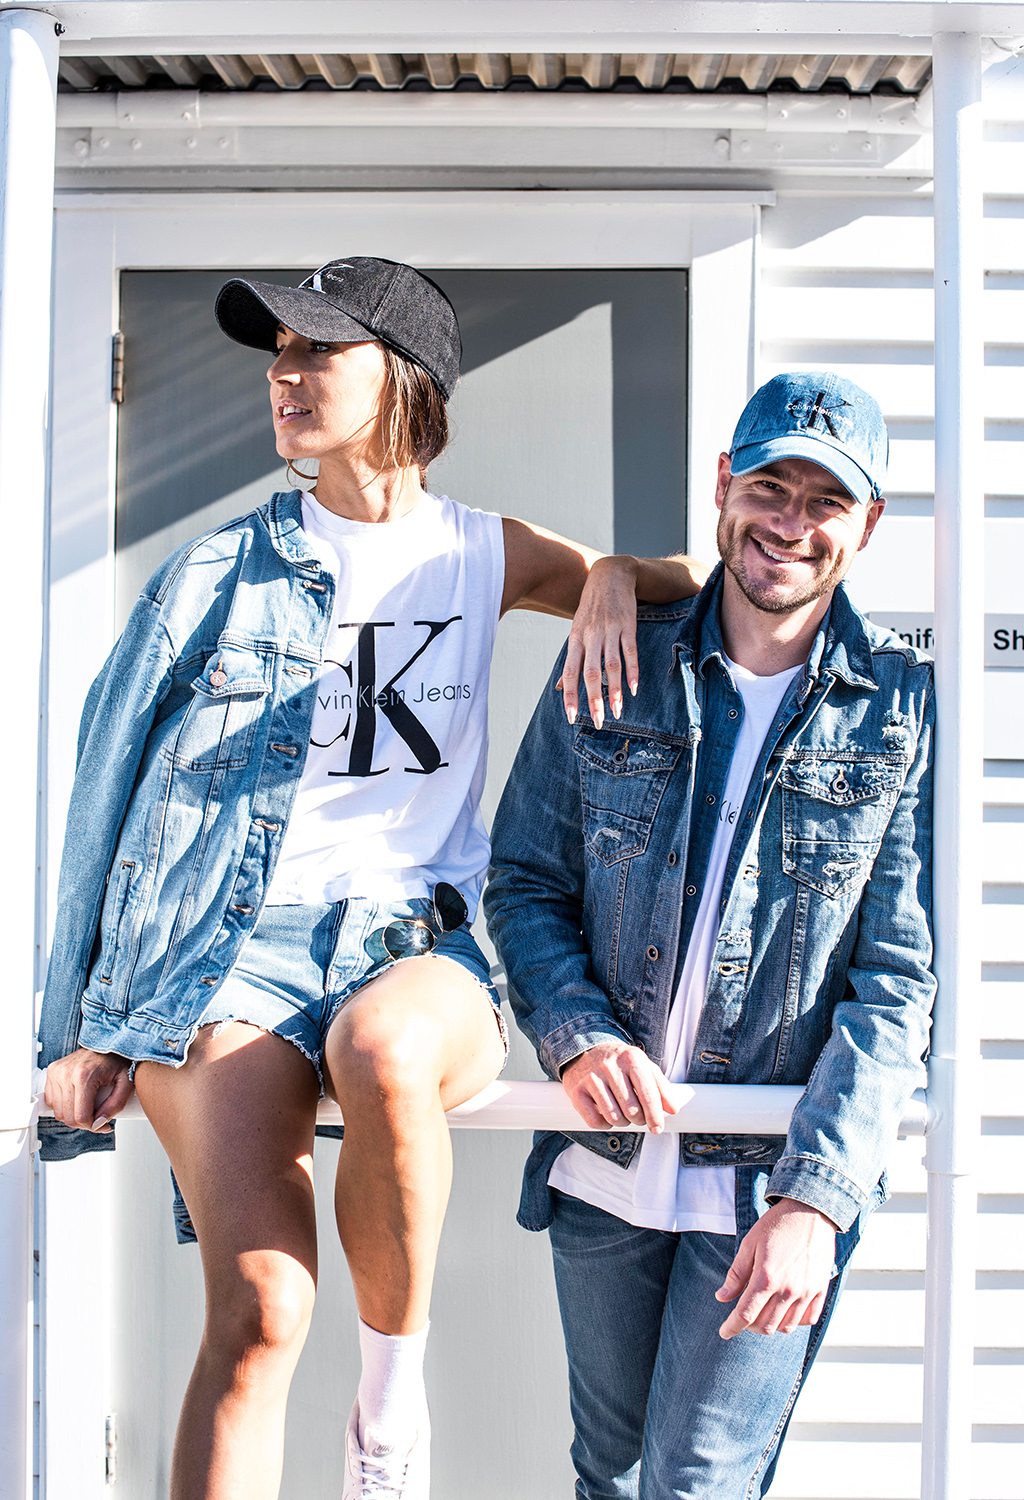 jaheb_barnett_mens_fashion_holly_estelle_fashion_bloggers_new_zealand_calvin_klein_jeans